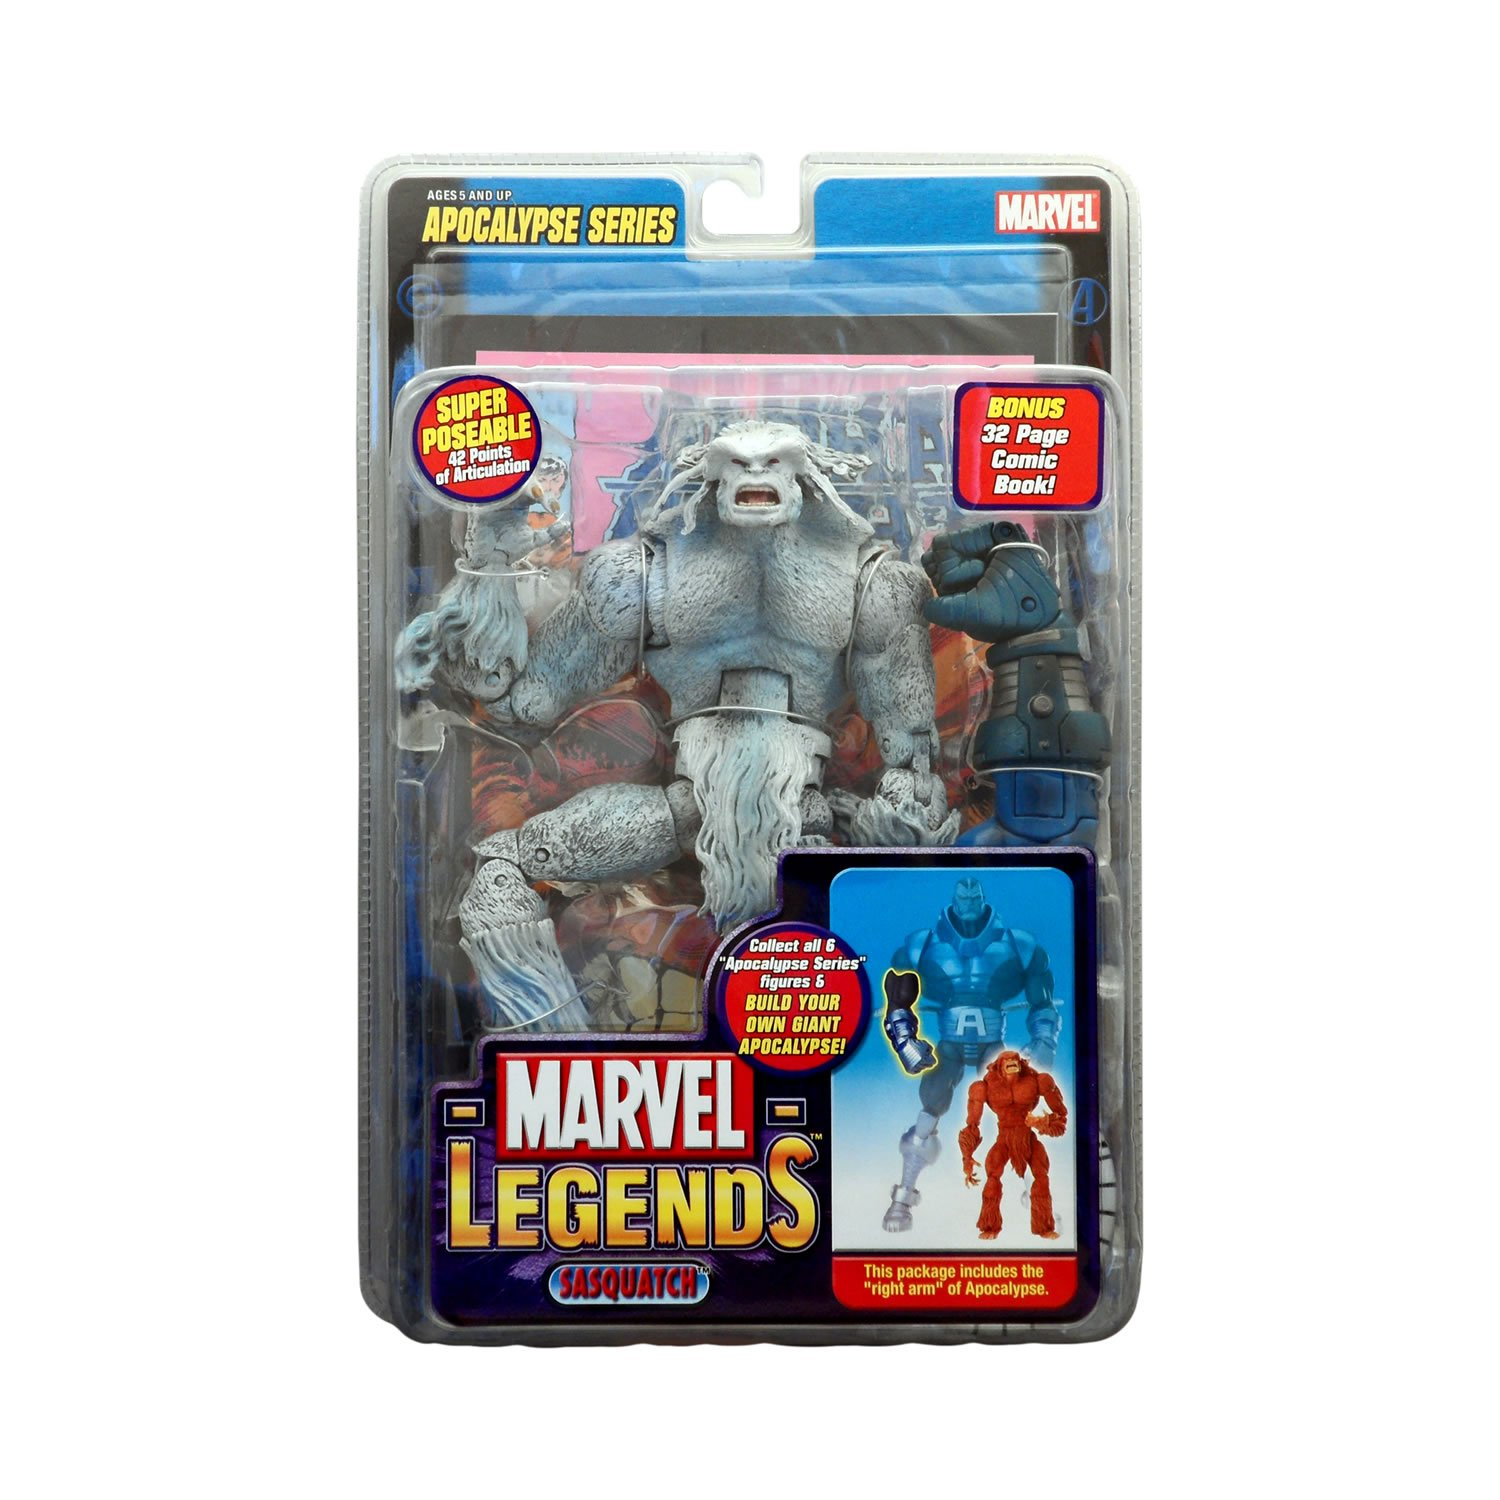 Right Arm of Apocalypse Plus Bonus 32 Page Comic Toy Biz 71164 Variant White SASQUATCH with Super Poseable 42 Points of Articulation Marvel Legends Year 2005 Apocalypse Series 9 Inch Tall Action Figure